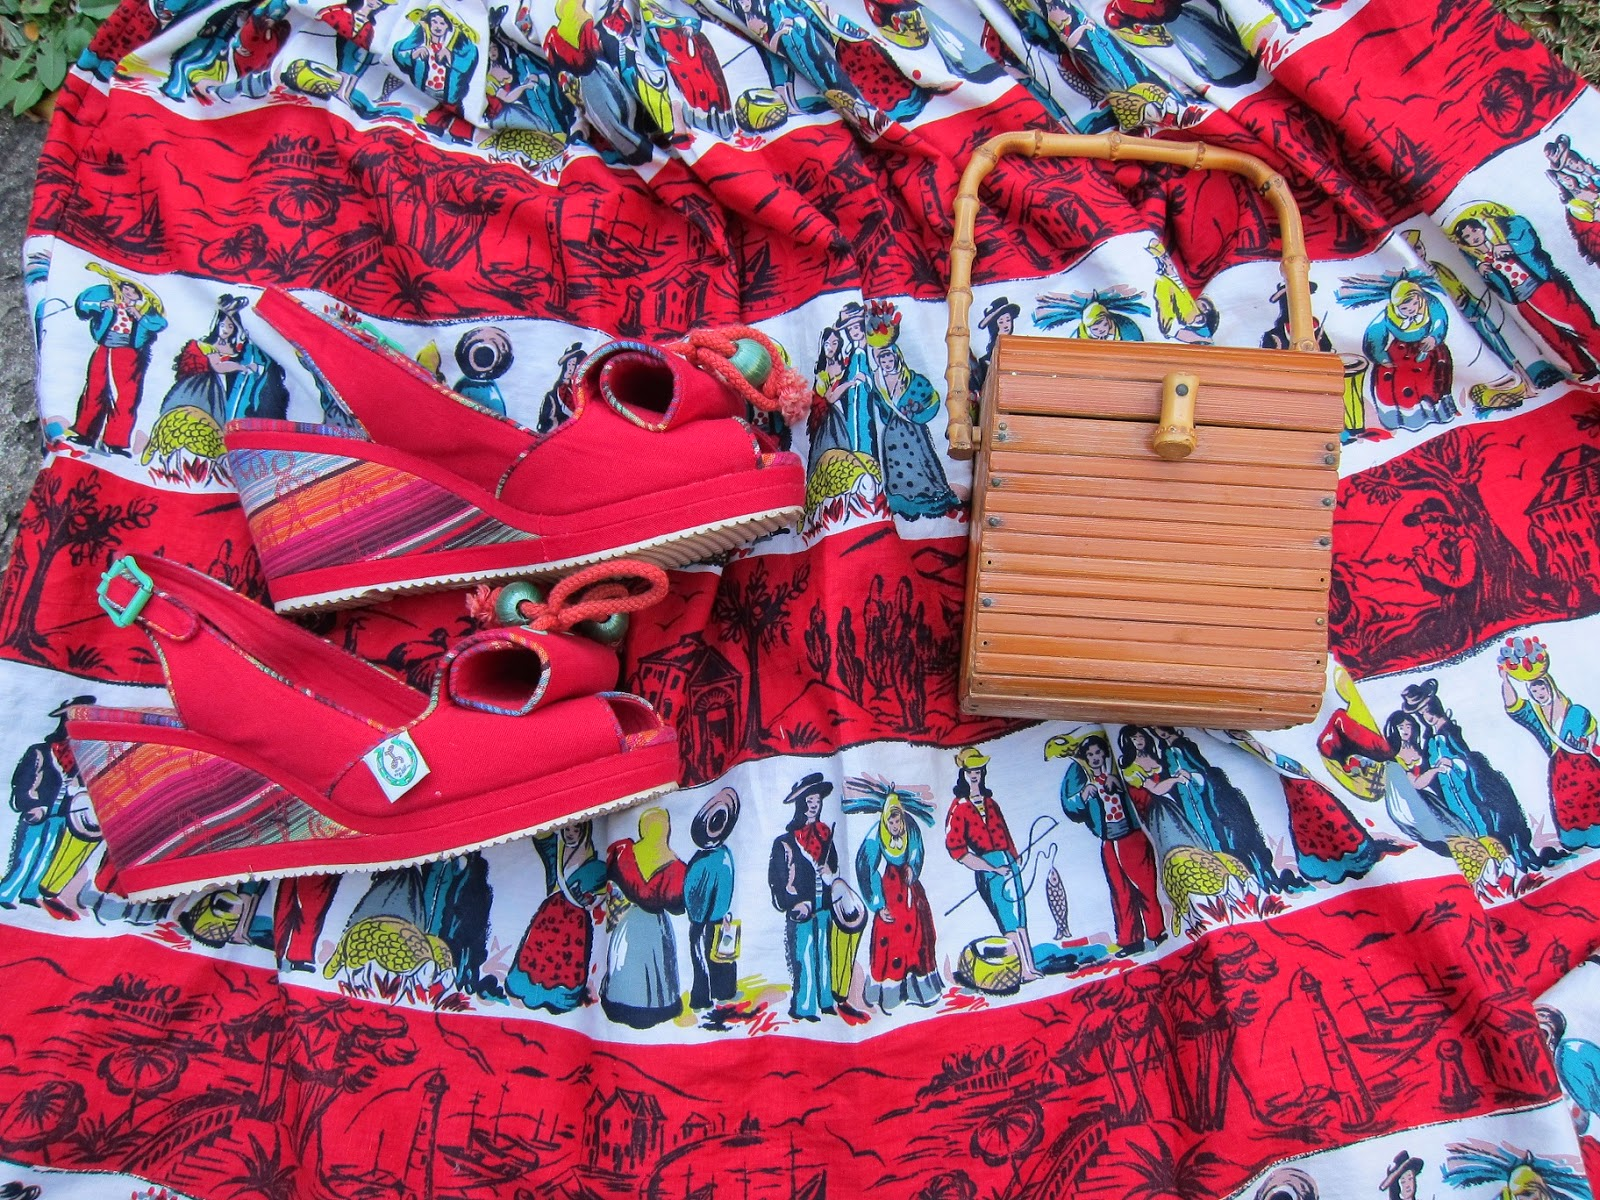 miss l fire shoes review norma red mexican 1950s 50s bambhoo handbag retro vintage novelty print fabric